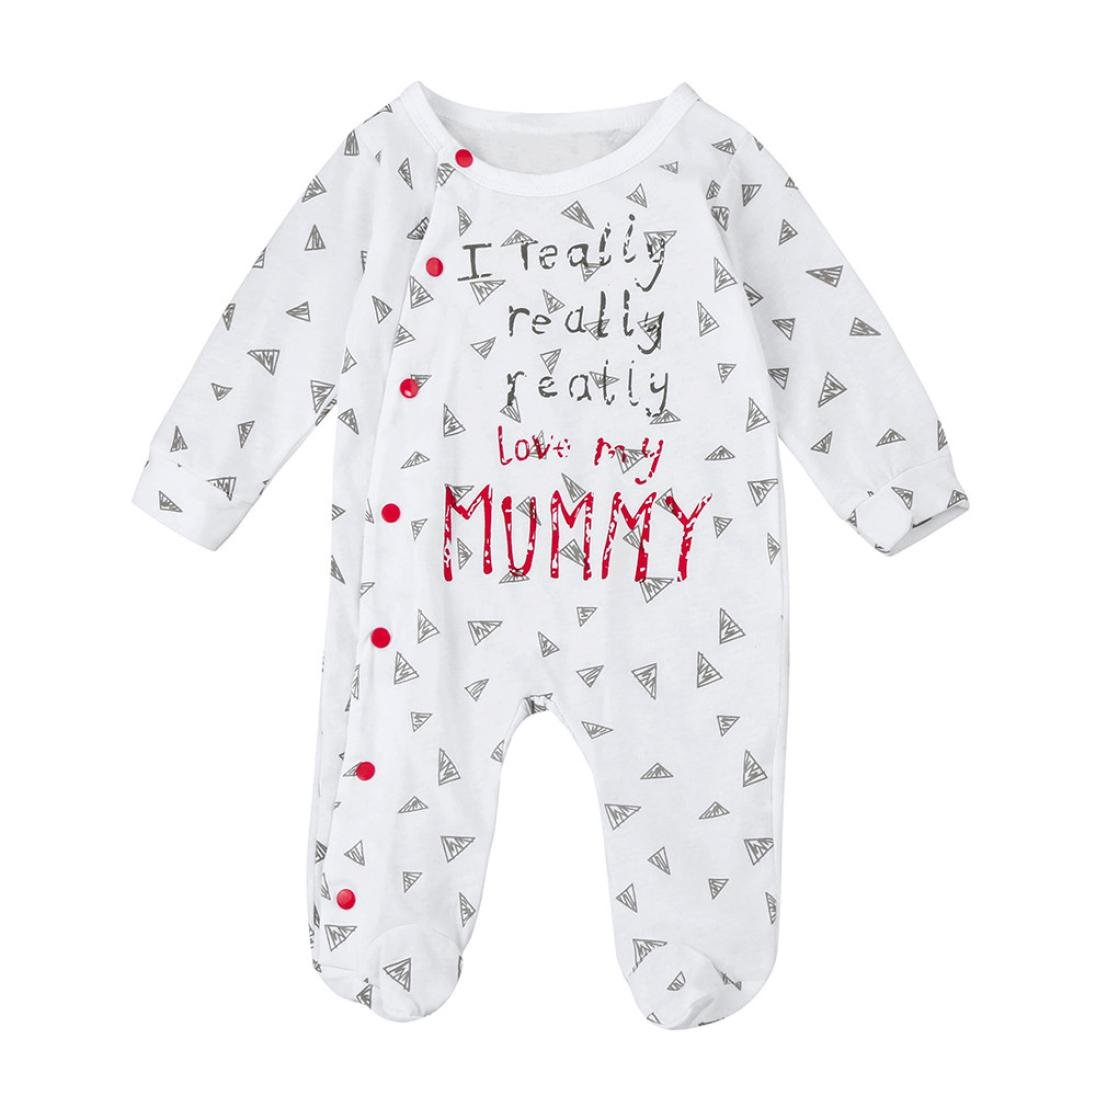 VENMO Cute Infant Bodysuit I Really Love My Mummy/Daddy Baby Boys Girls Long Sleeve Romper Jumpsuit Outfits Clothes for 3-24 Months Newborn